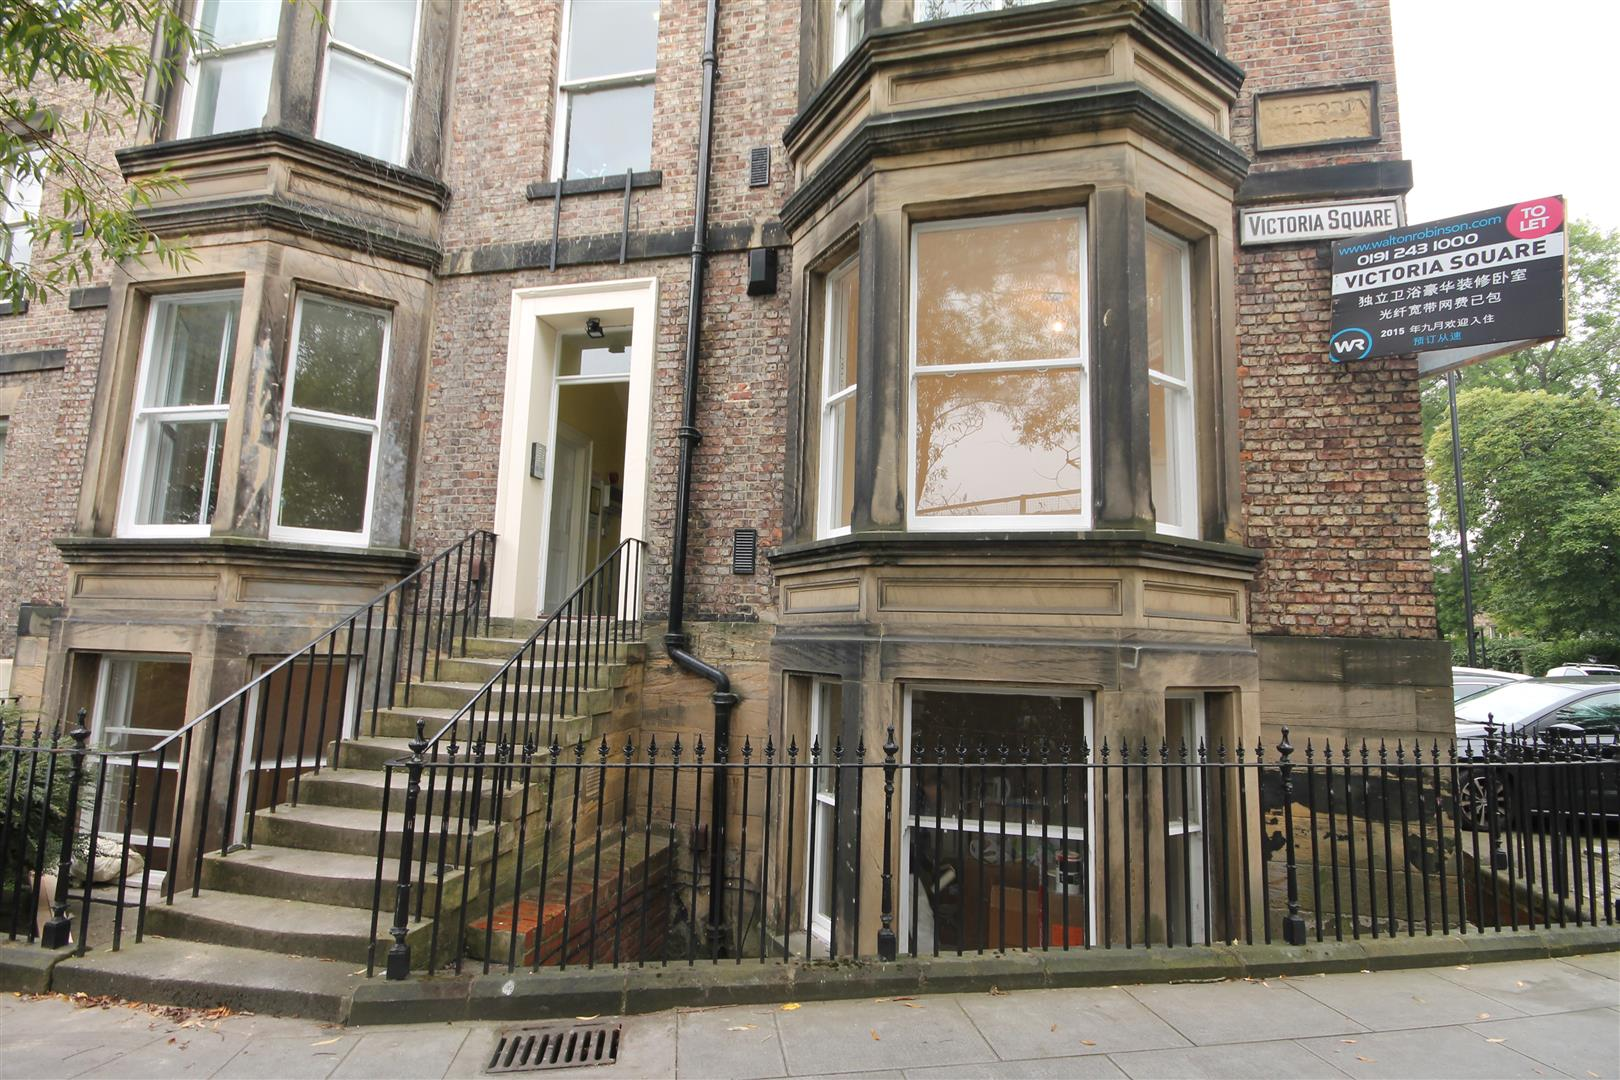 Victoria Square Newcastle Upon Tyne, 1 Bedrooms  House Share ,To Let